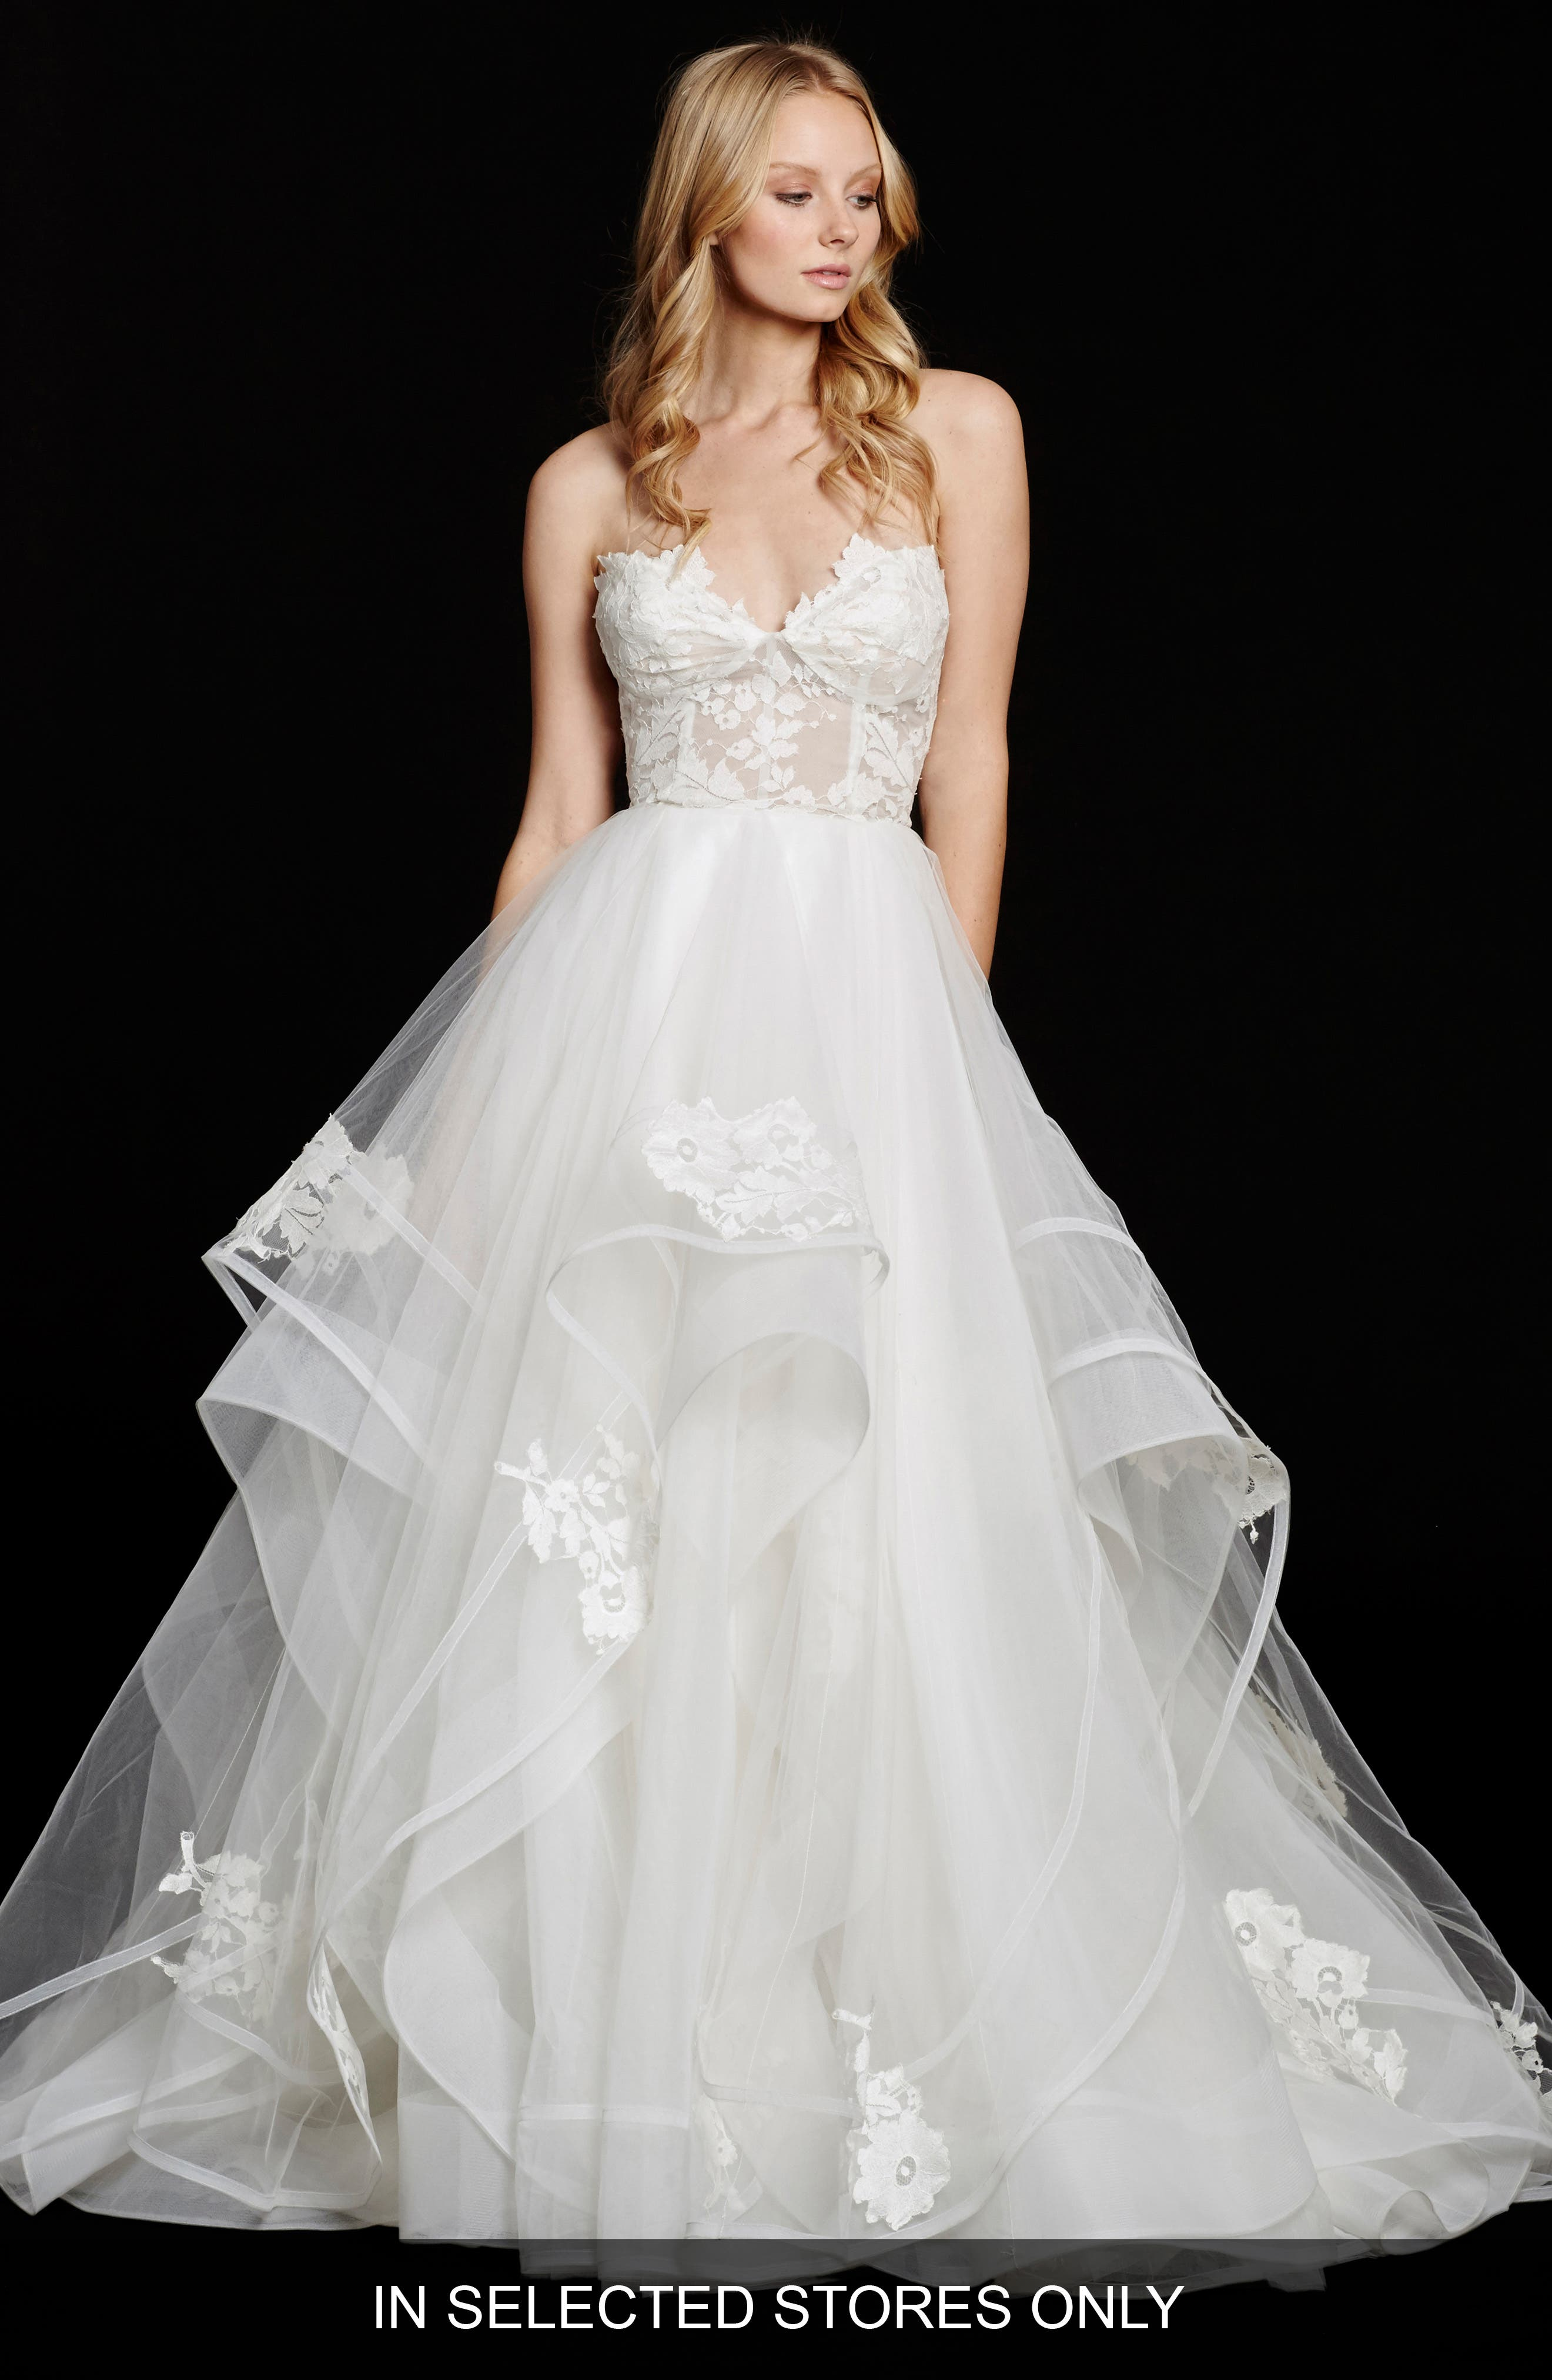 Chantelle Strapless Lace & Tulle Ballgown,                             Alternate thumbnail 3, color,                             IVORY